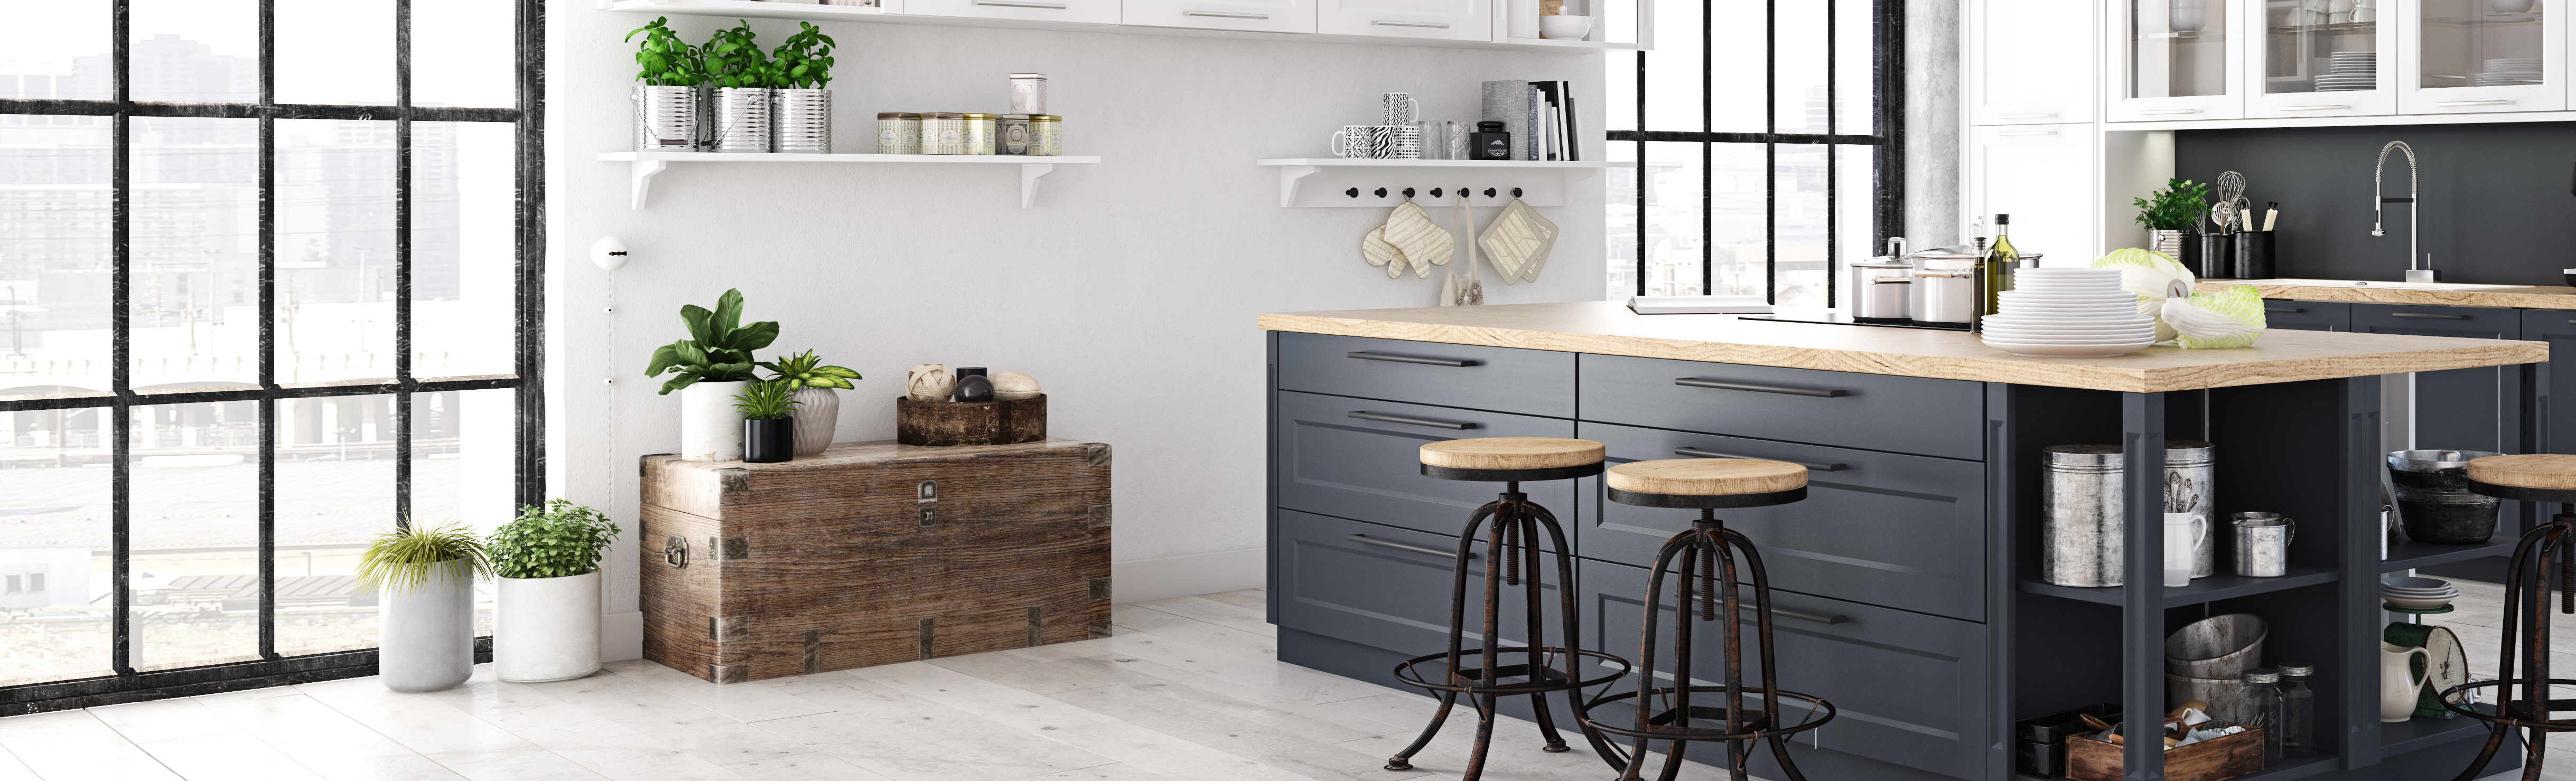 Nordic Style Kitchen Greater Sense Of Order And Cleanliness